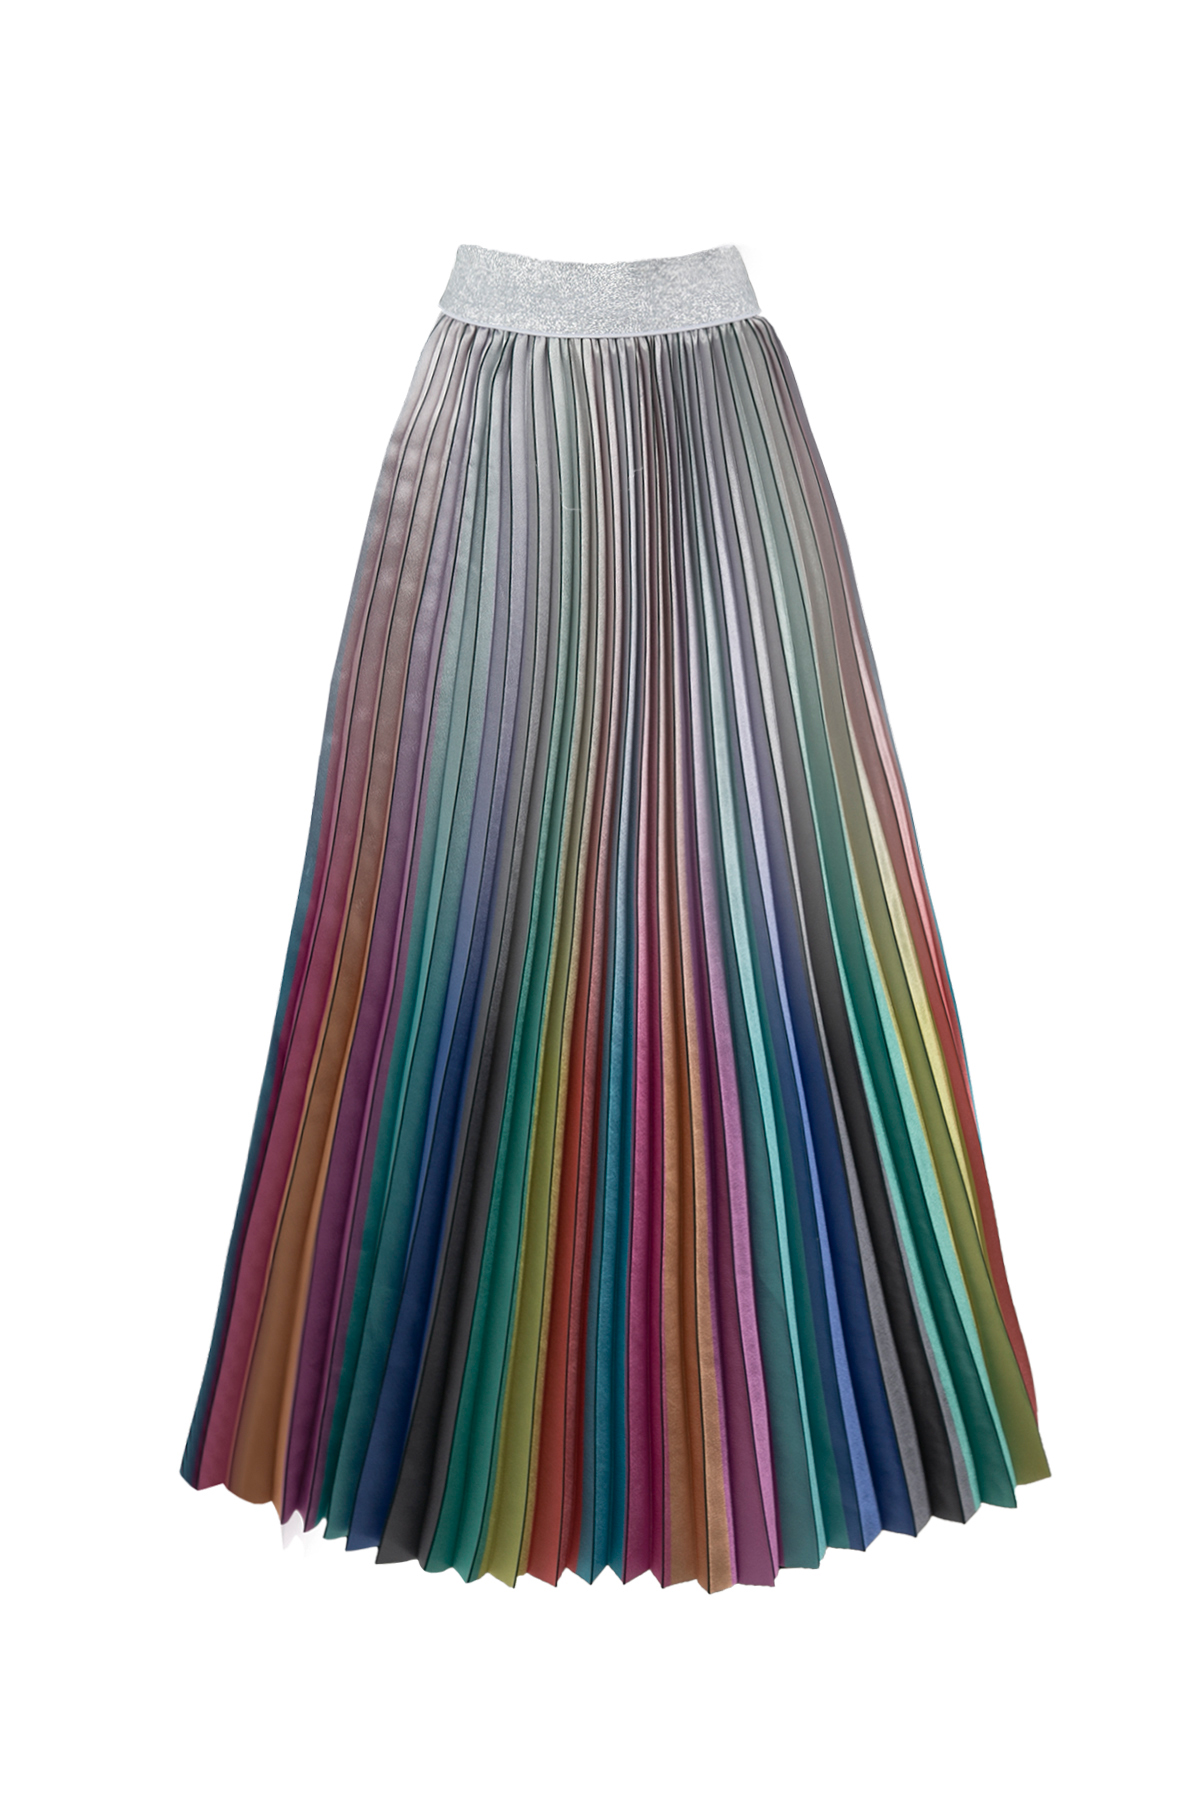 98e99bb45 PLEATS PLEASE Skirt - Trelise Cooper-New In : Trelise Cooper Online ...